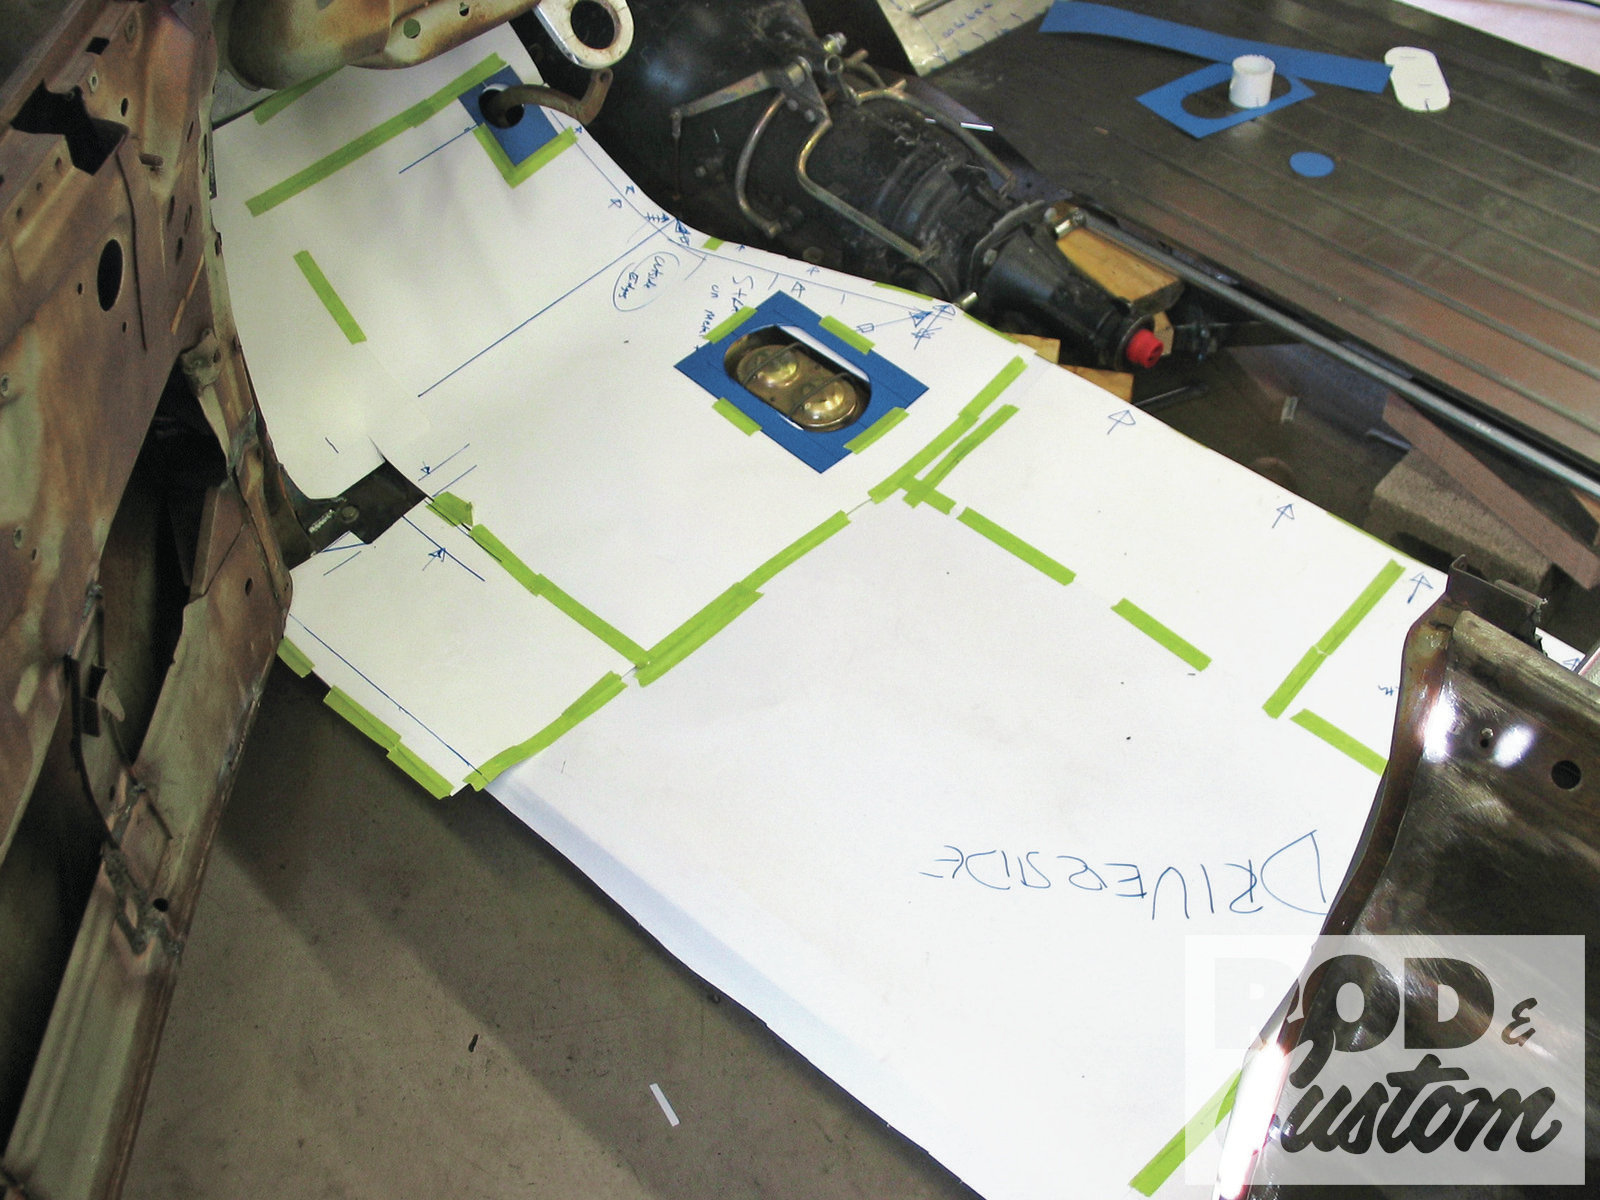 9. A posterboard template for each side of the floor was made, and openings for the frame-mounted master cylinder and booster were incorporated into the driver-side template.